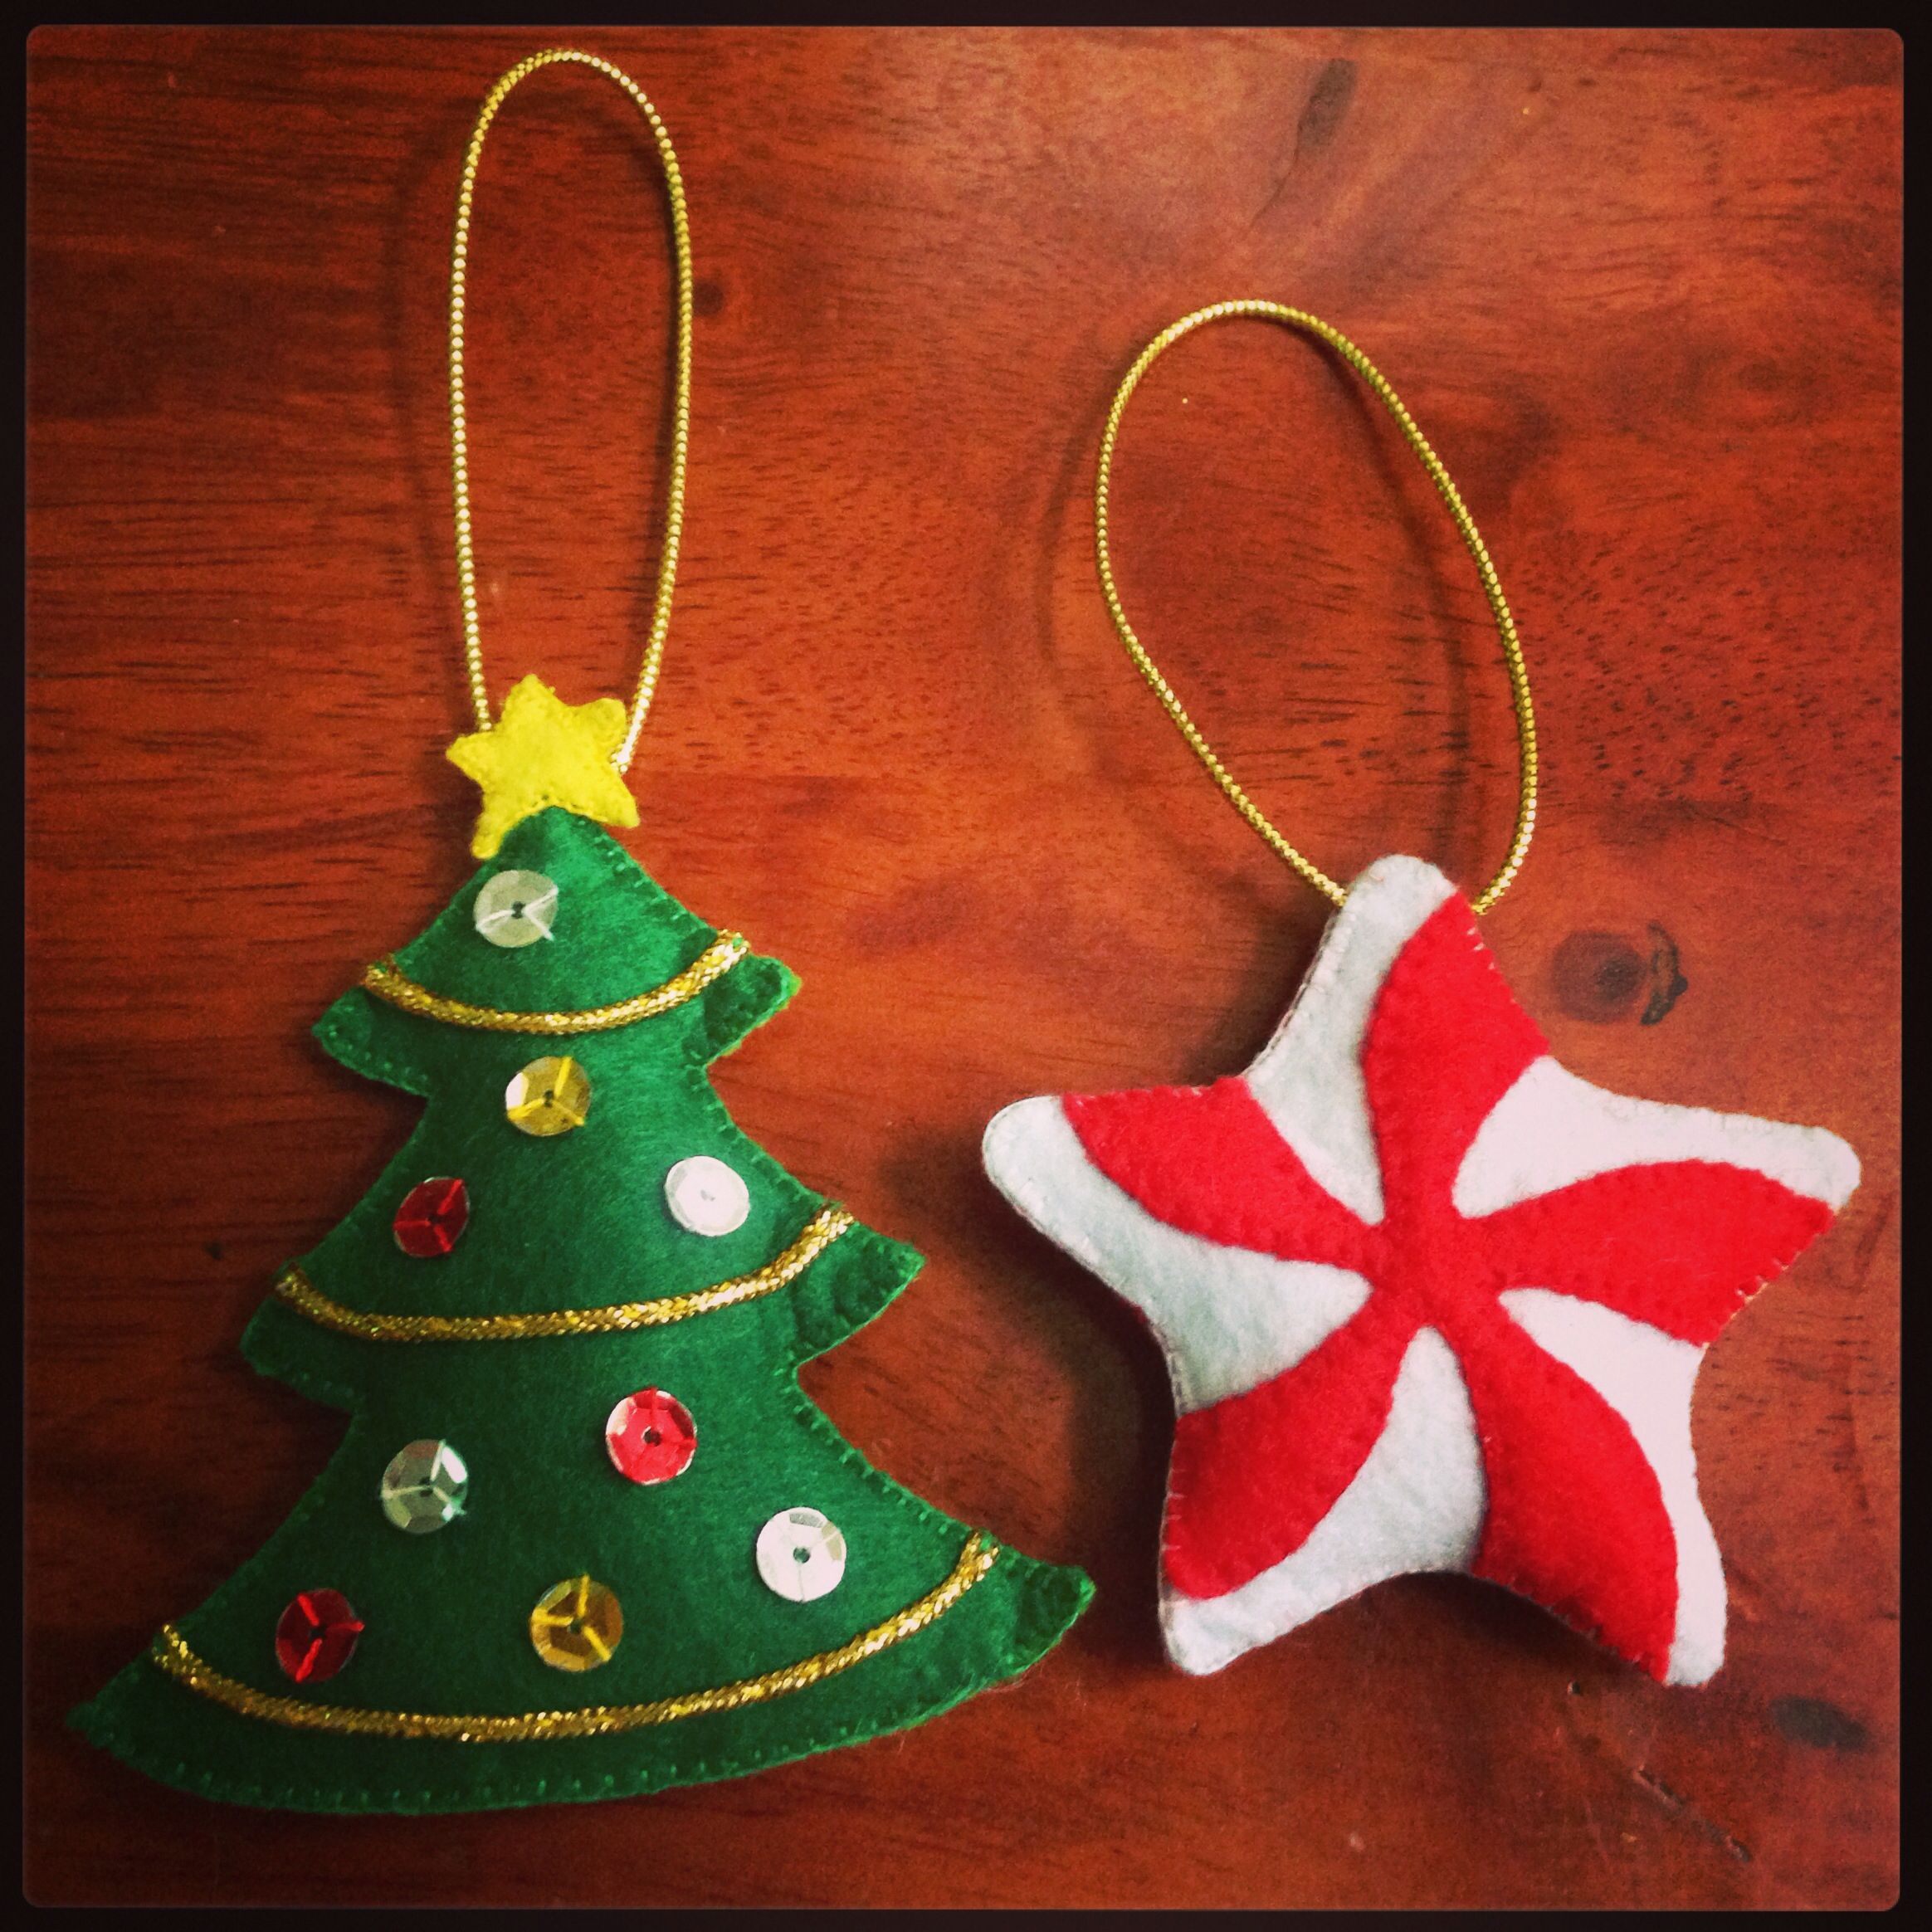 Handmade Fabric Christmas Tree Decorations Google Search Fabric Christmas Trees Christmas Ornaments Felt Christmas Decorations